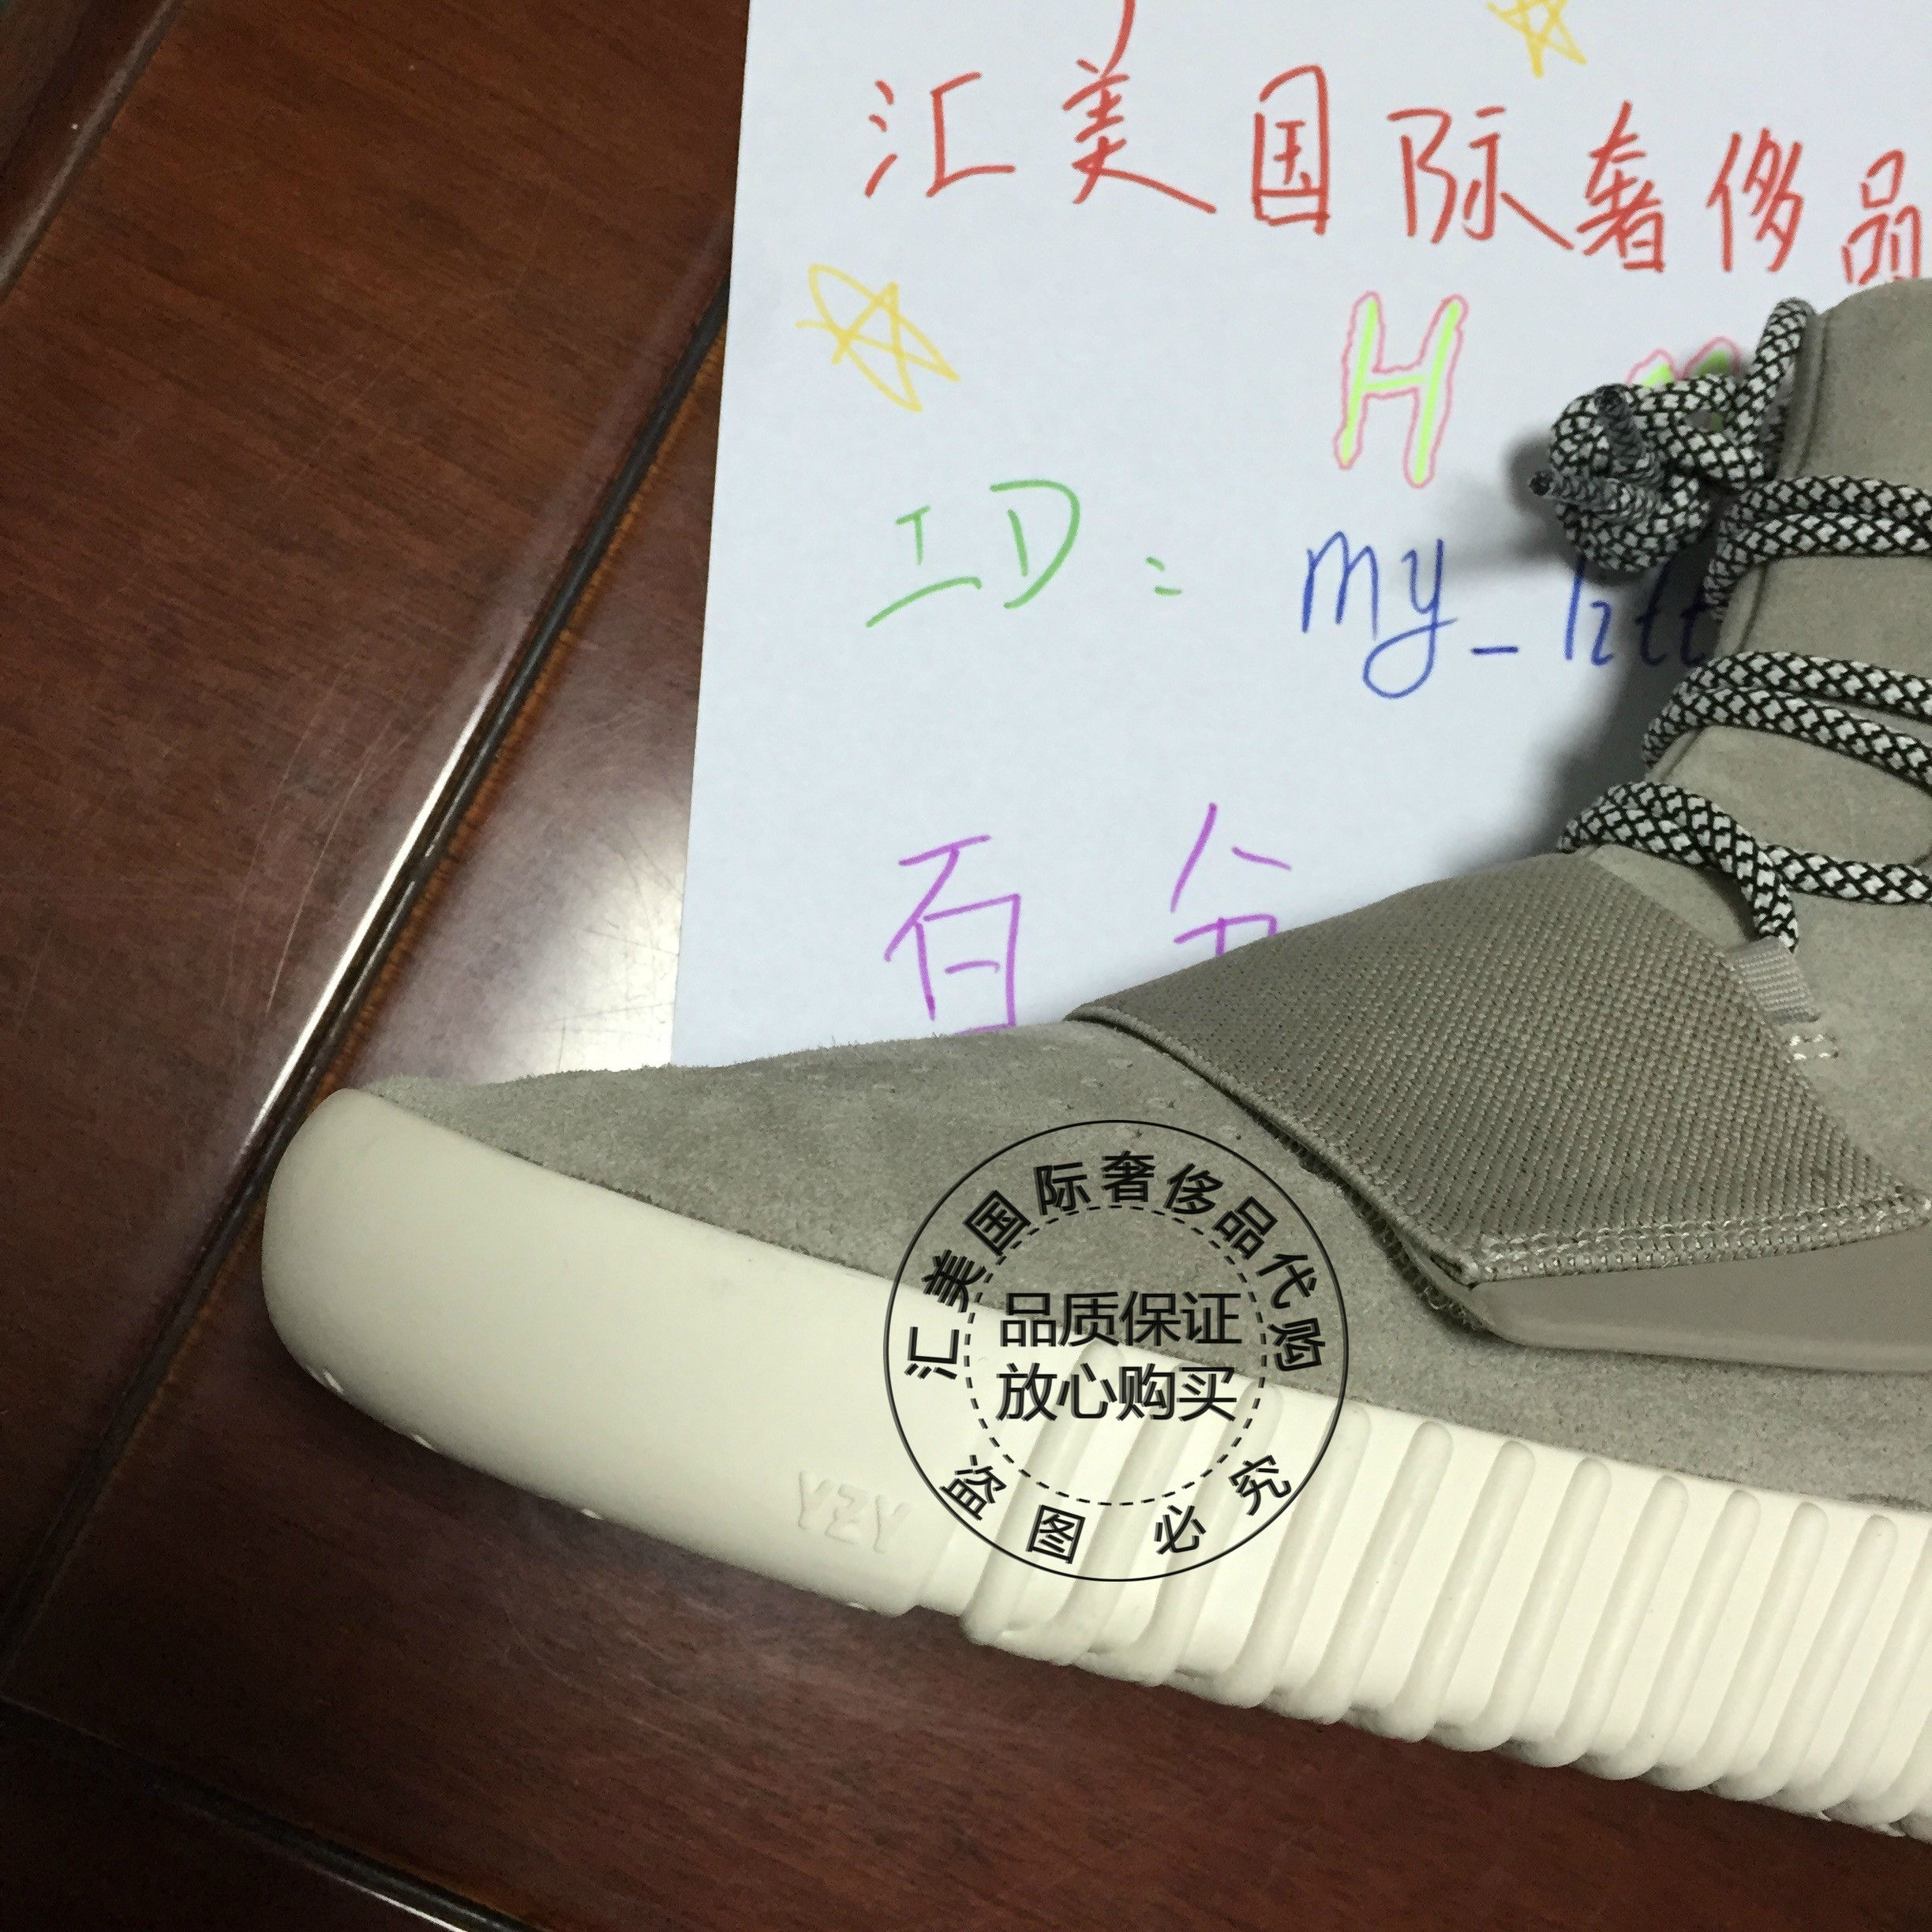 adidas yeezy 750 boost fake hoga. Black Bedroom Furniture Sets. Home Design Ideas